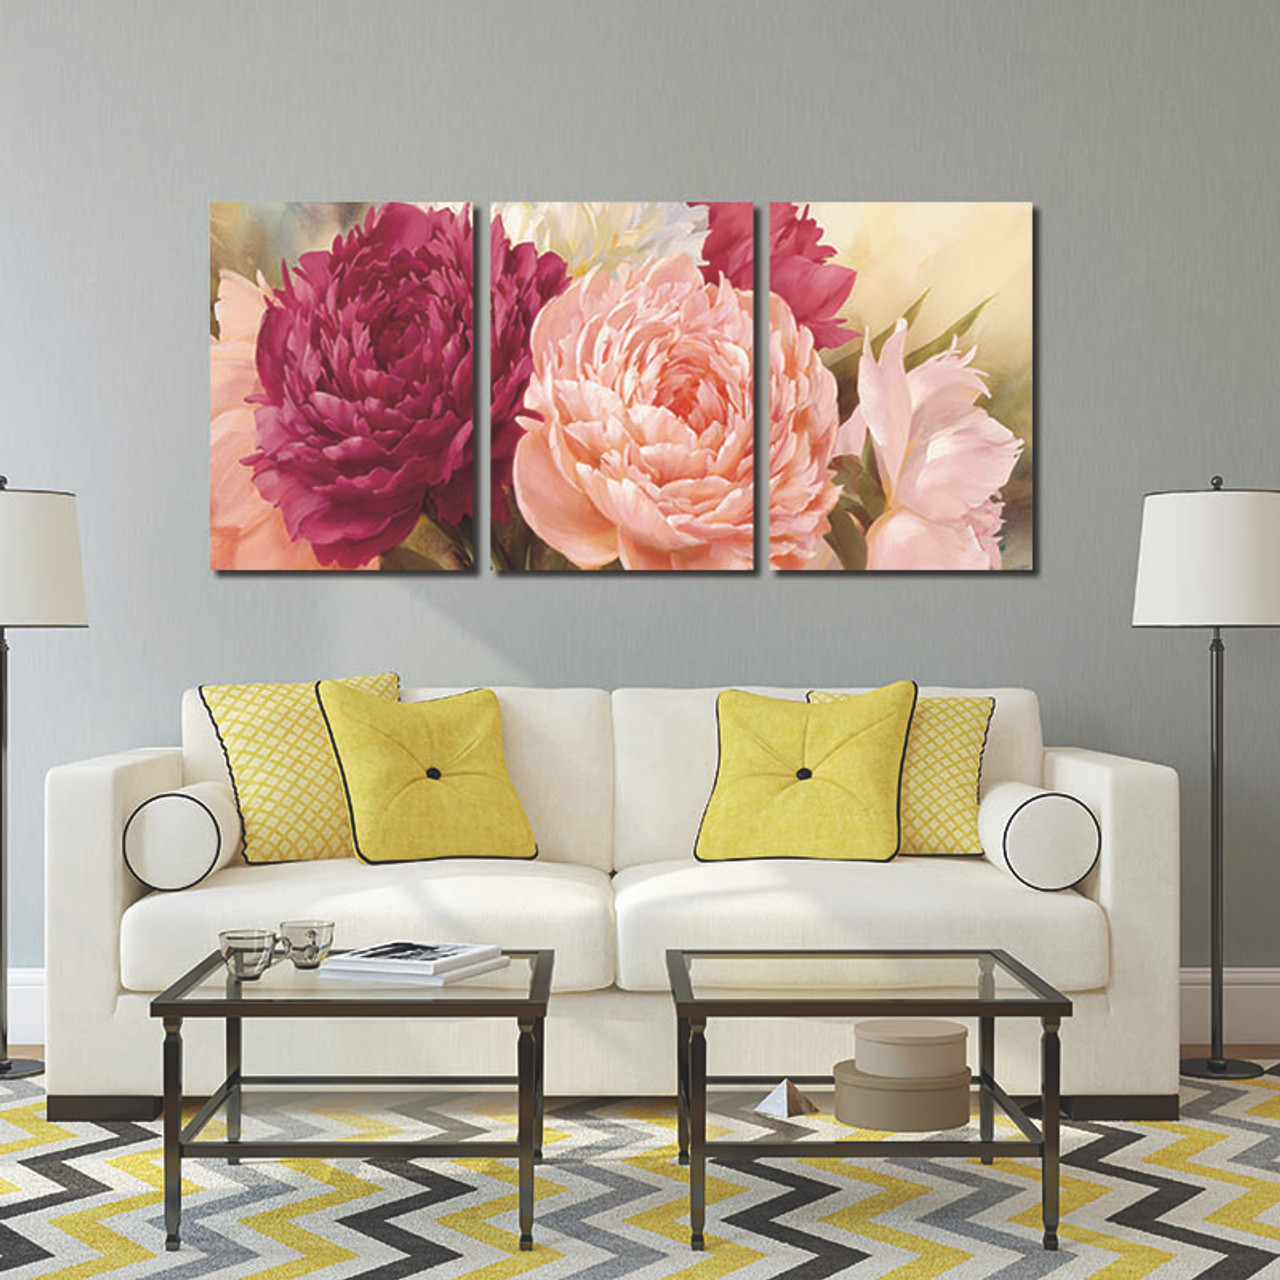 ... 3 Panel Pictures Canvas Painting Wall Art Peony Flower Painting Wall  Art Decorative Canvas Wall Art ...